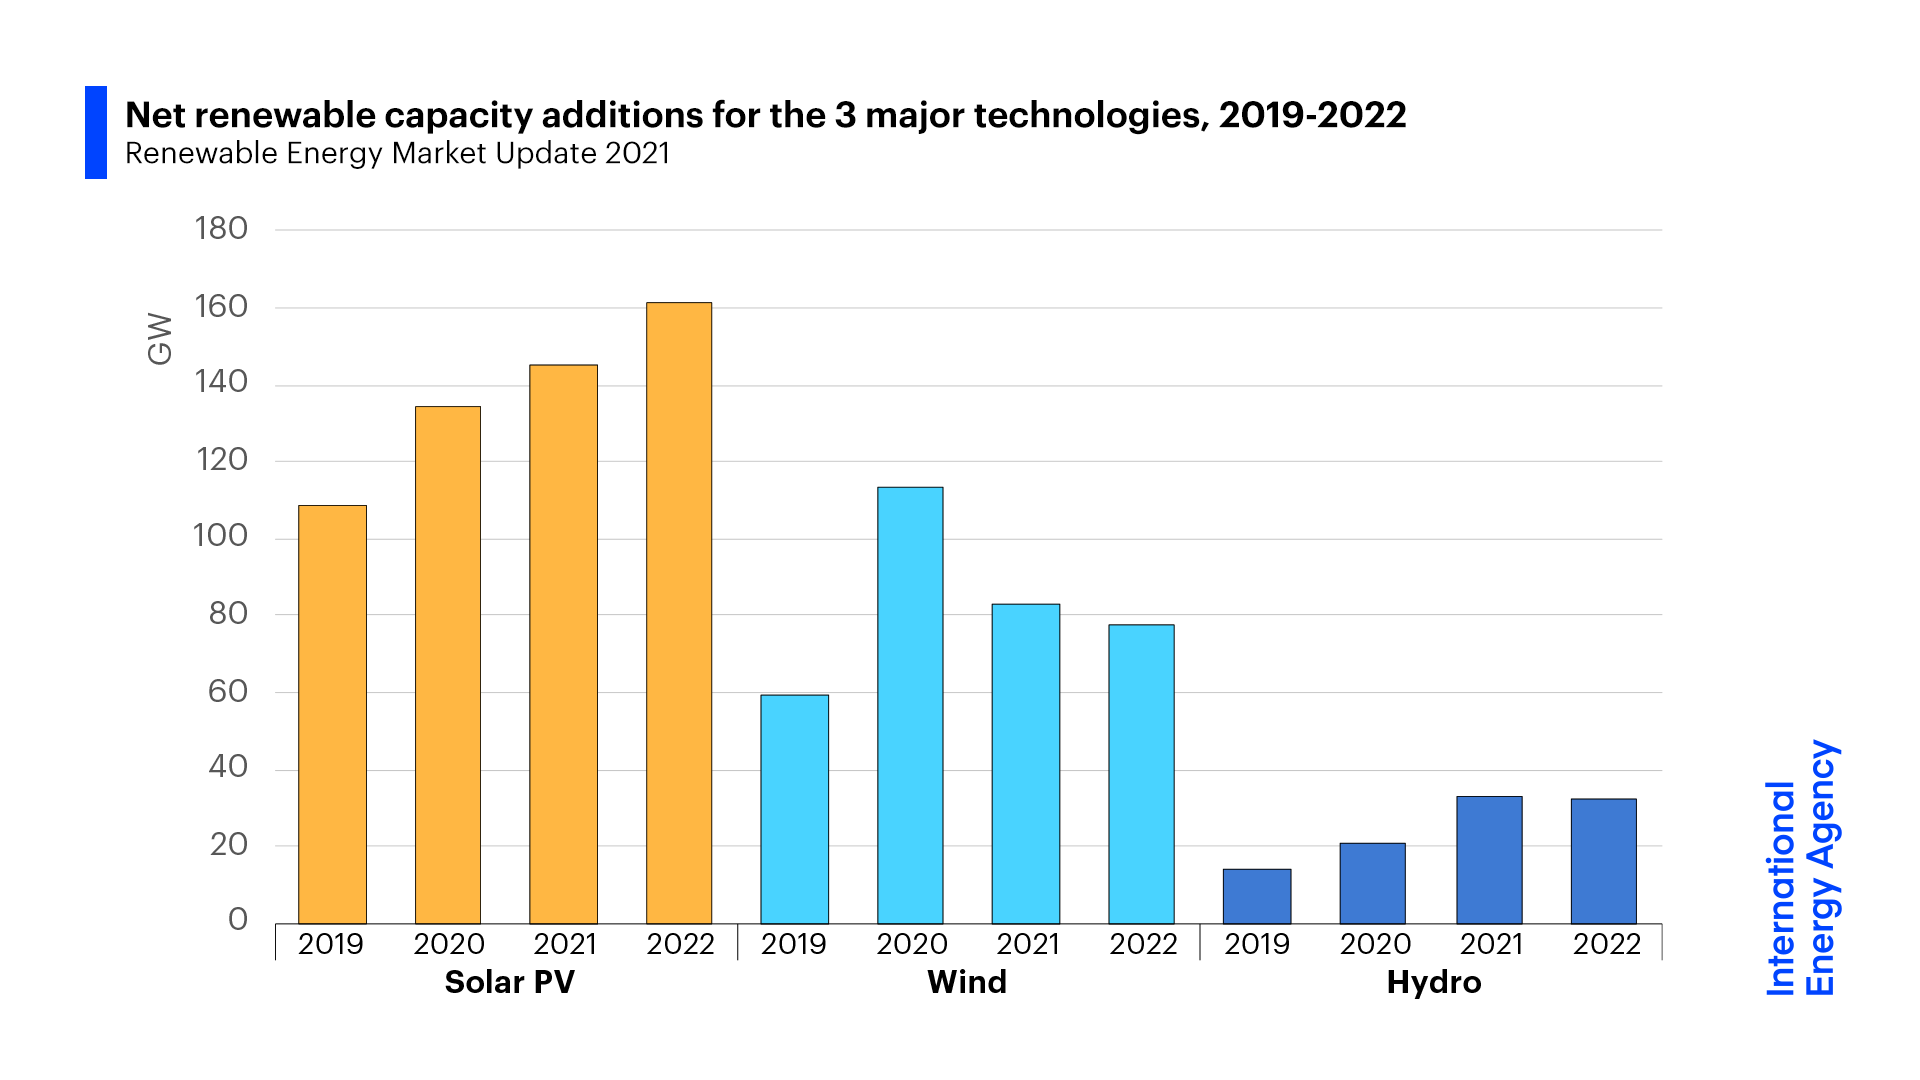 2020 saw the largest renewable energy capacity increase in 20 years